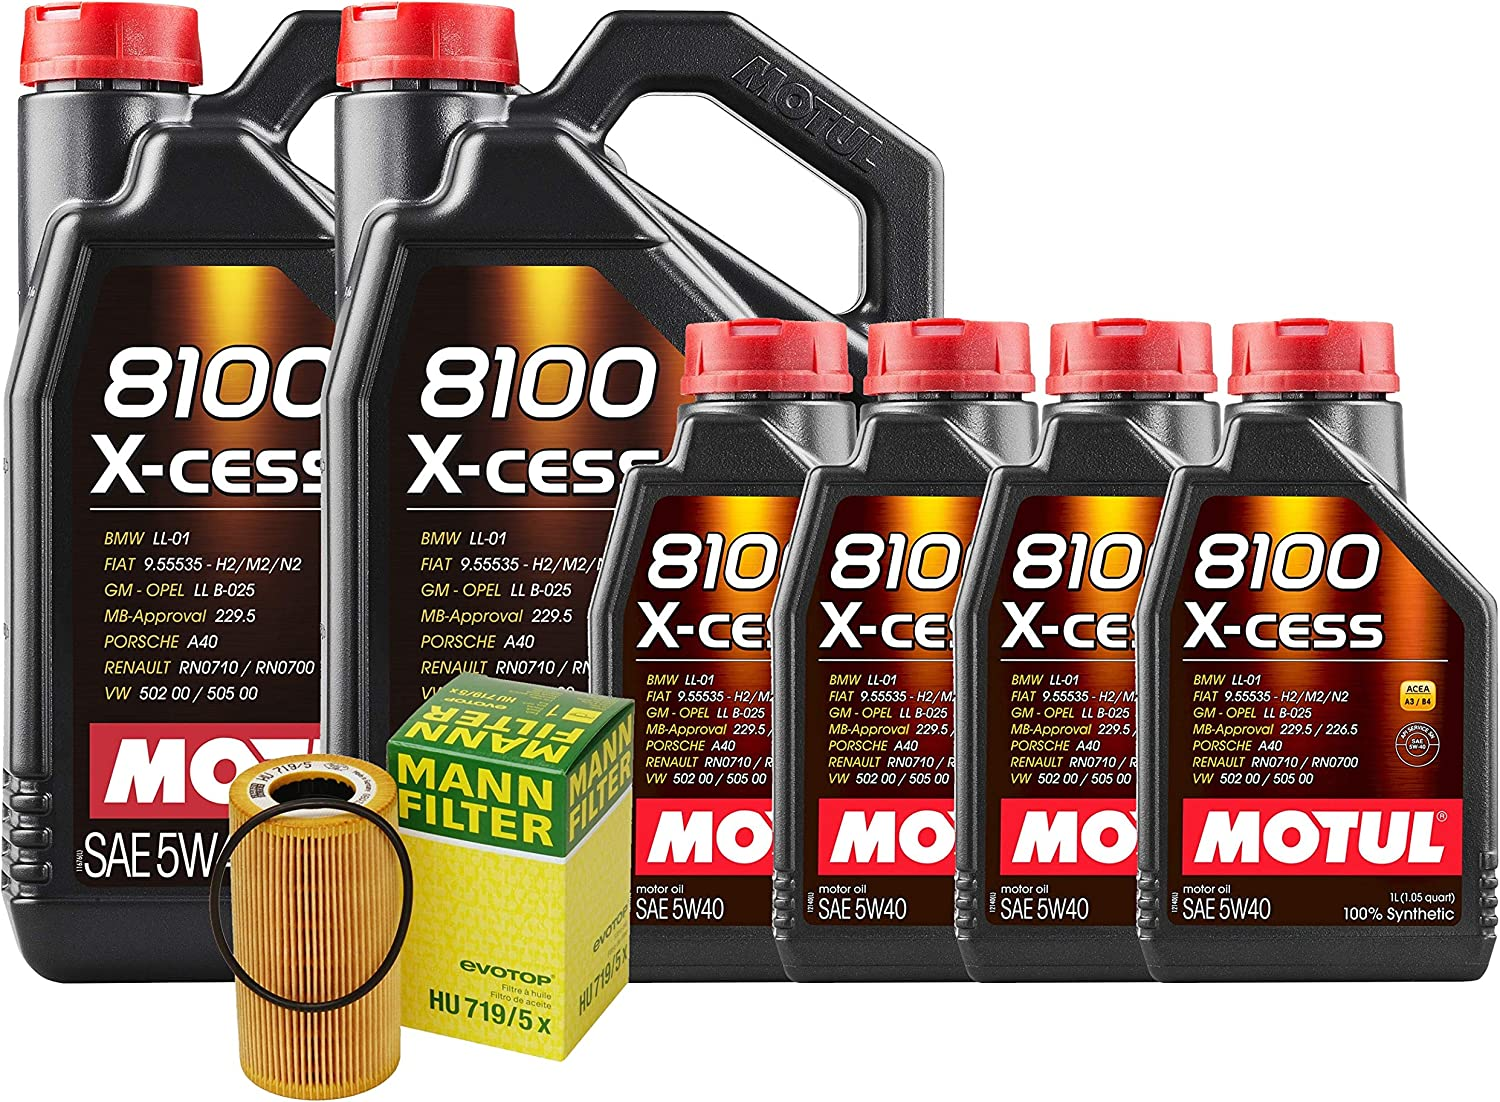 Newparts 14L 8100 X-Cess 5W-40 Filter Motor Carre Engine Oil Weekly update Kit free shipping